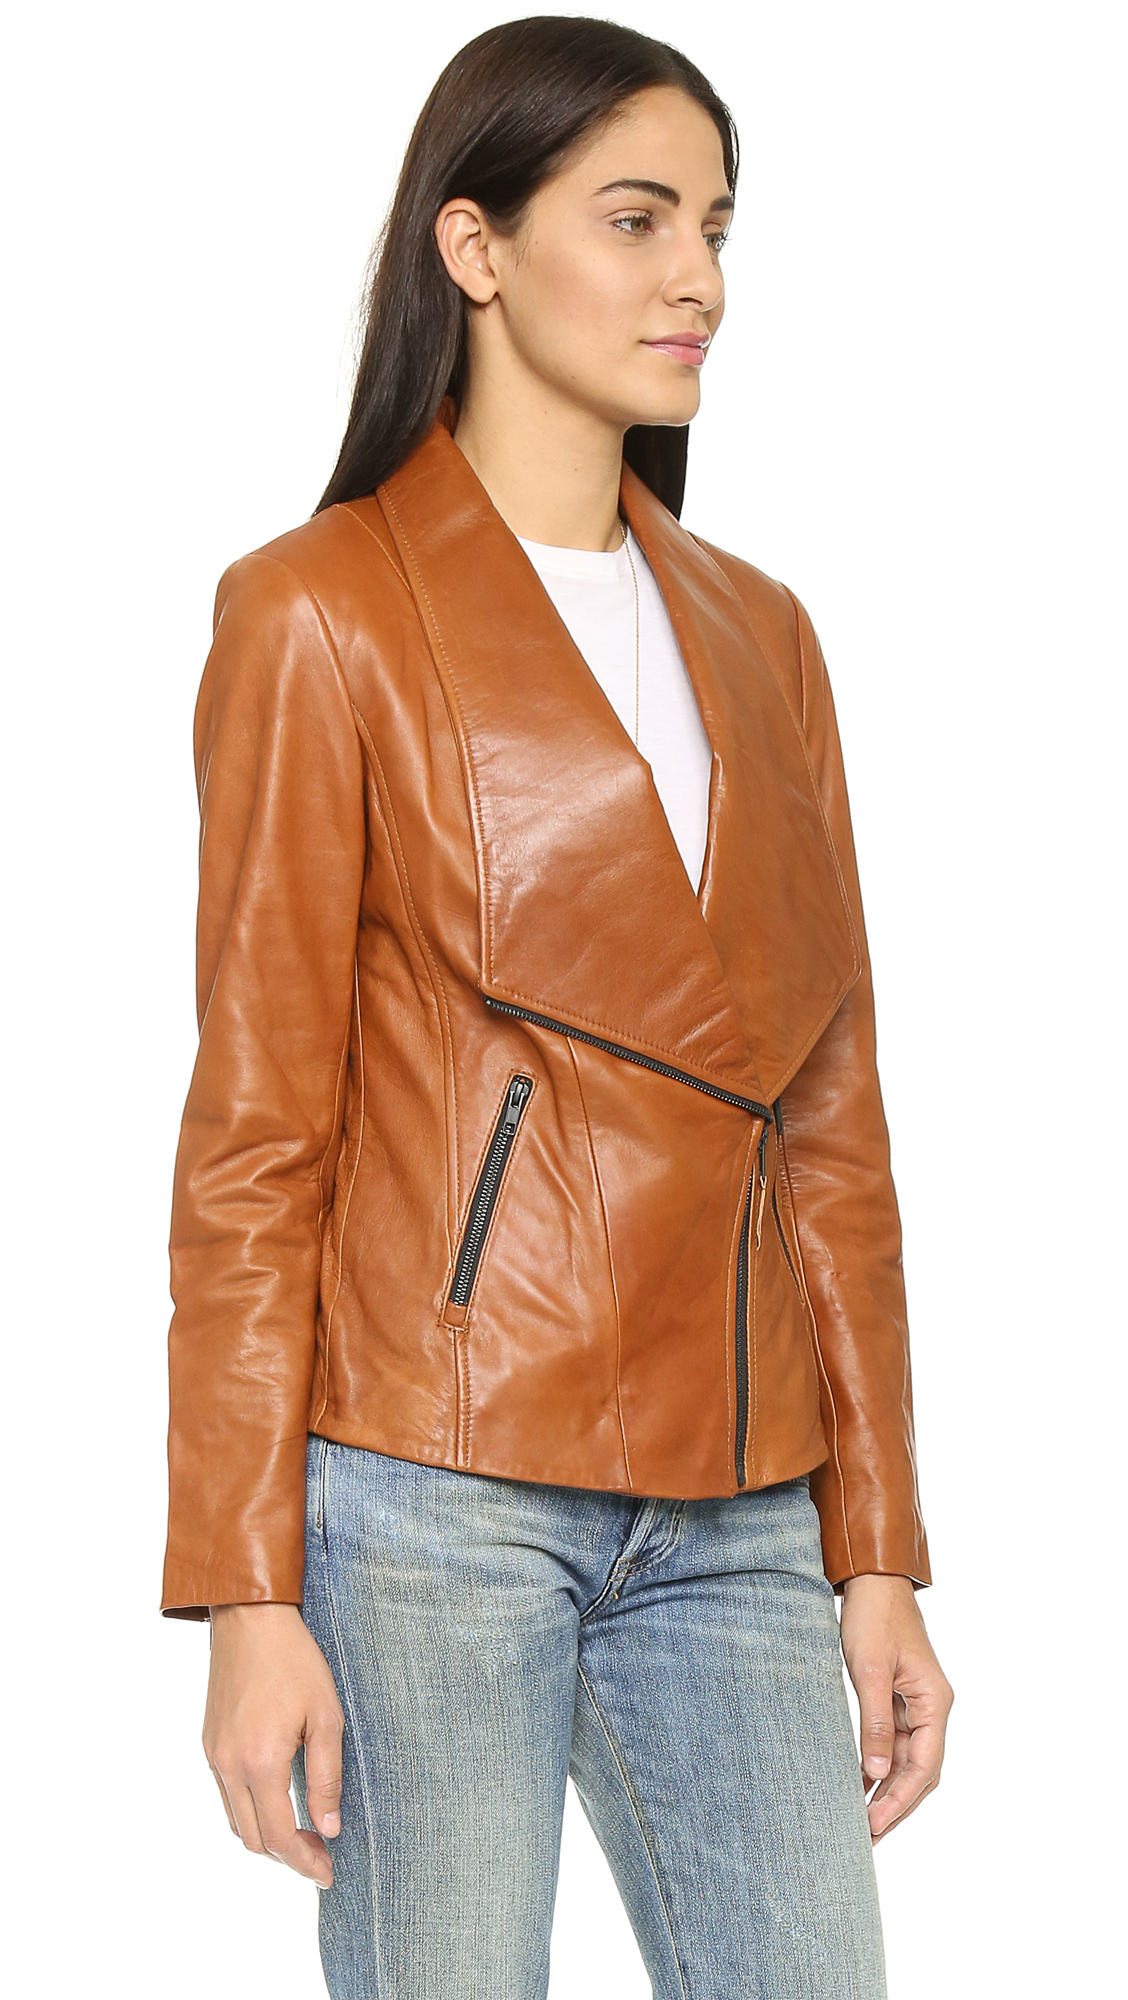 Soia & kyo Nerissa Leather Jacket - Camel in Brown | Lyst